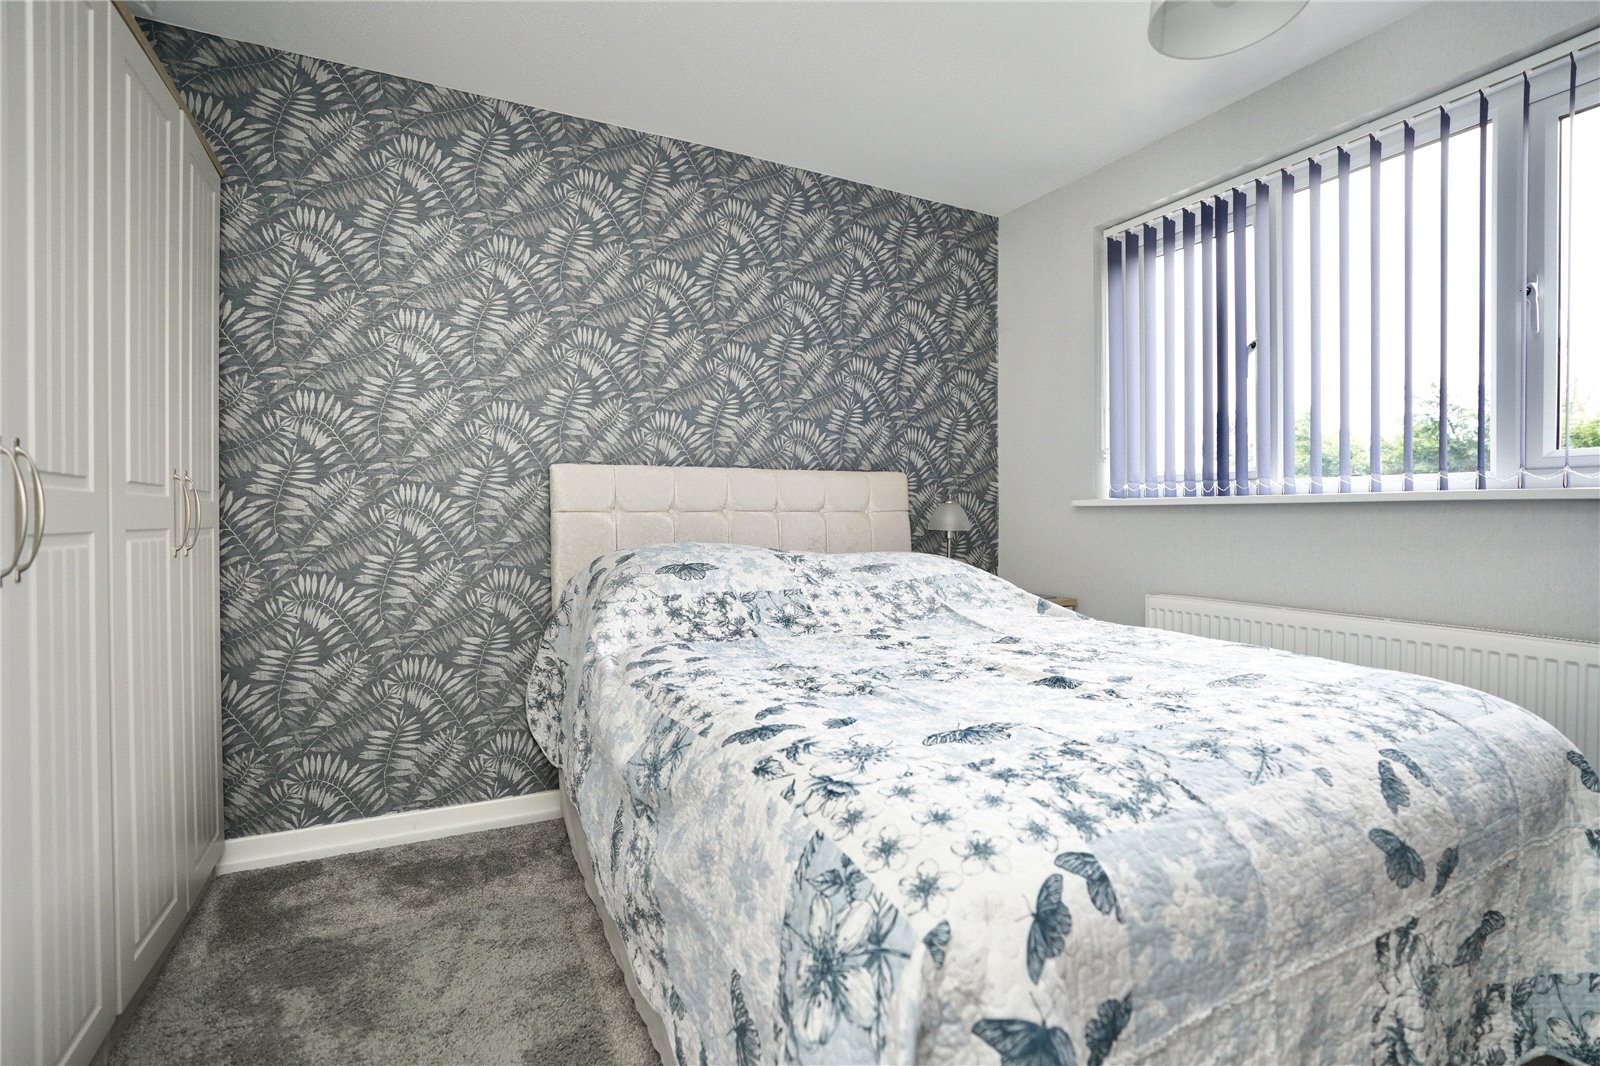 4 bed house for sale in Eaton Socon, PE19 8HU 9